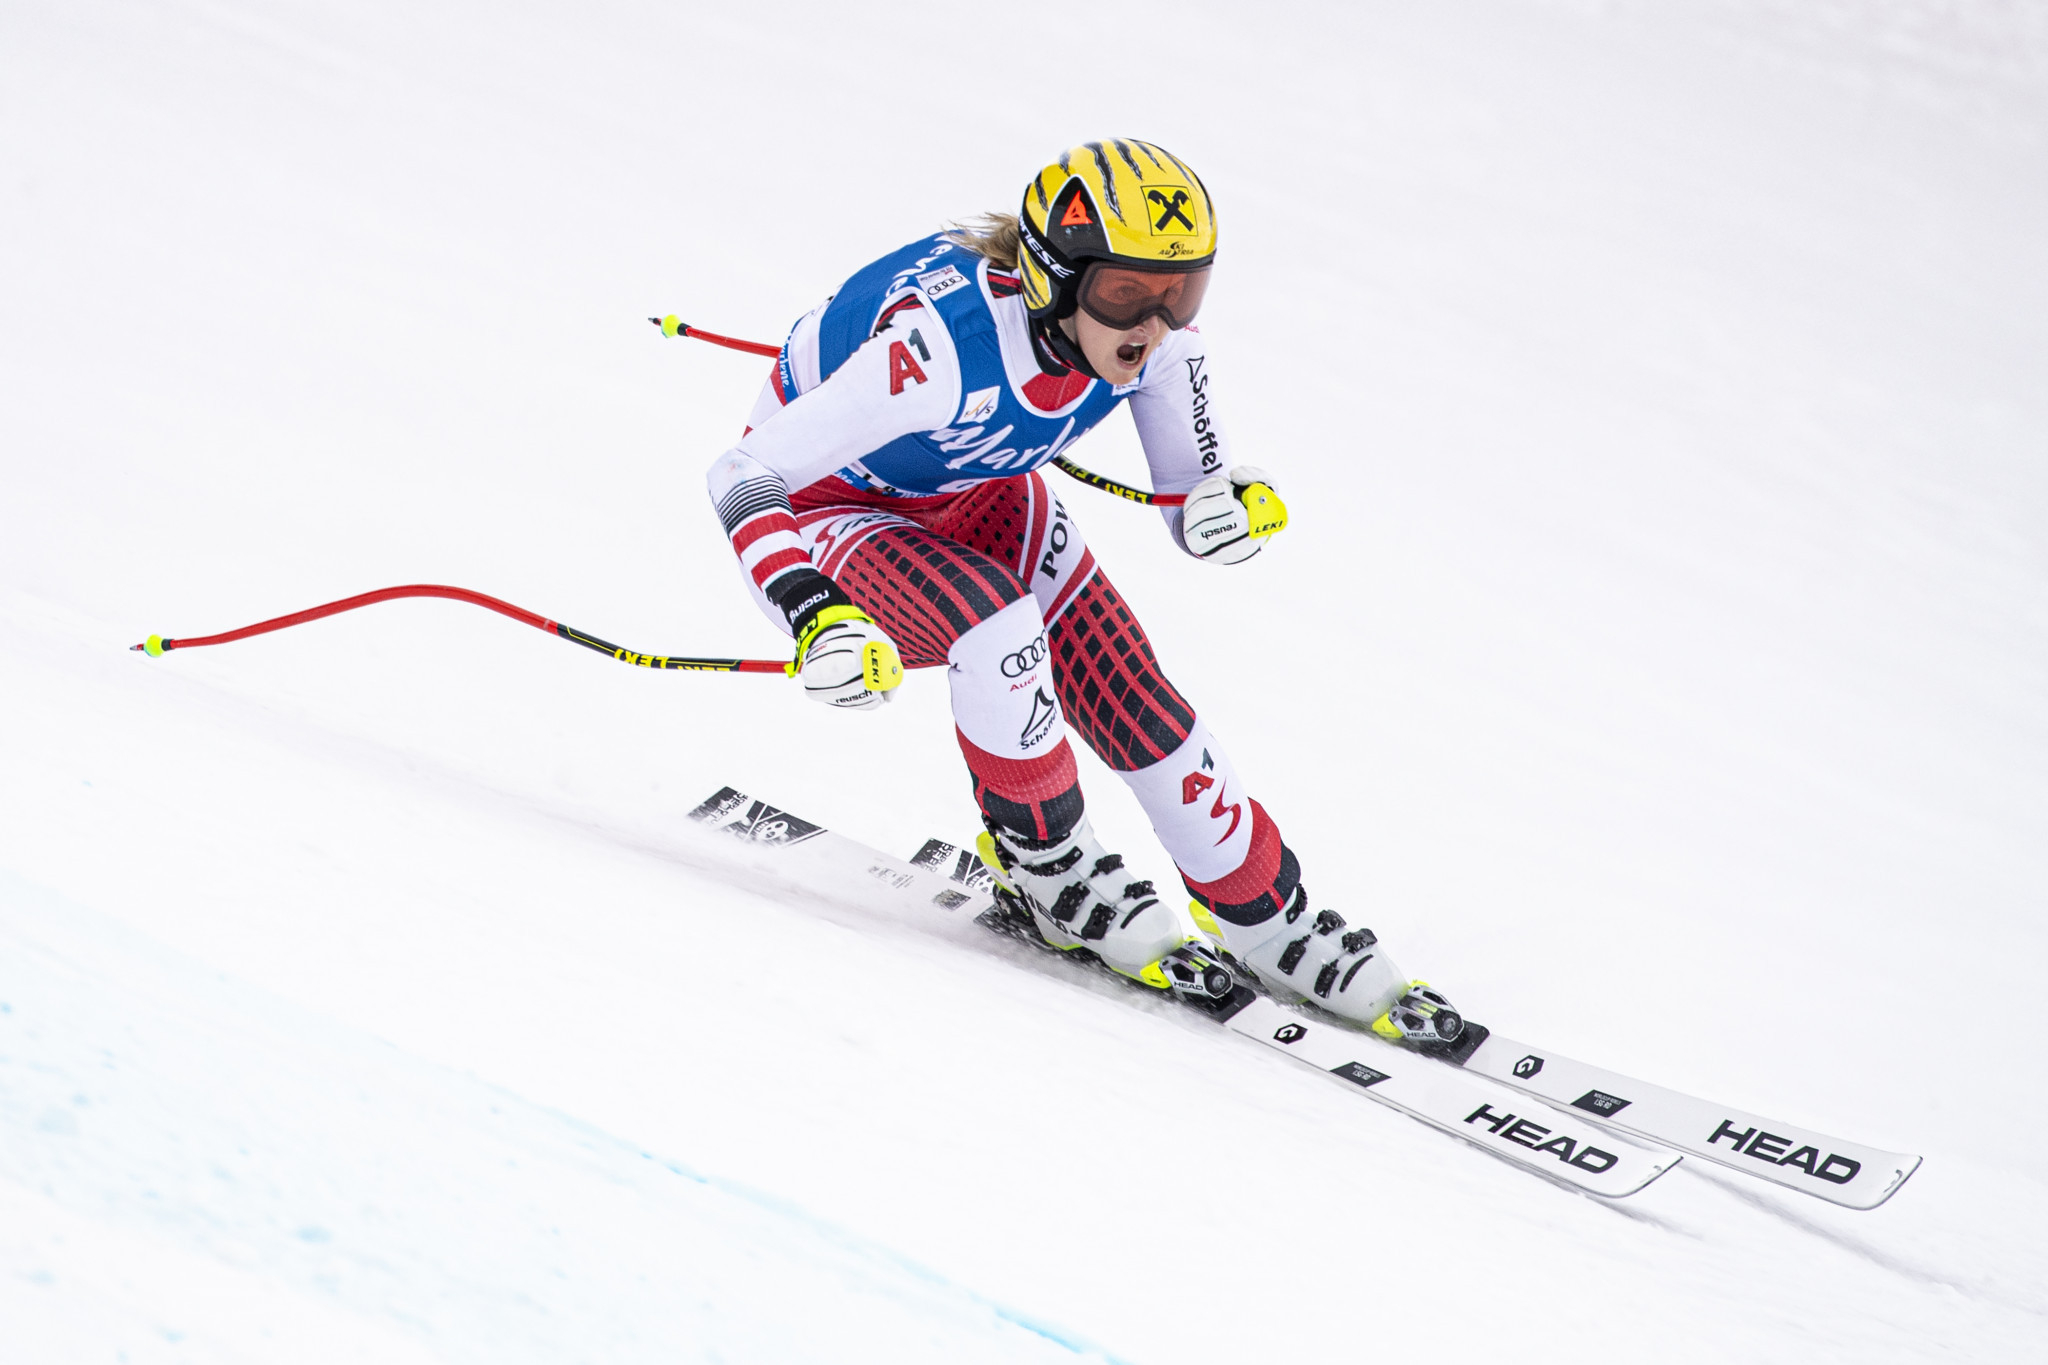 Austria's alpine skiing team are beginning a training camp ©Getty Images